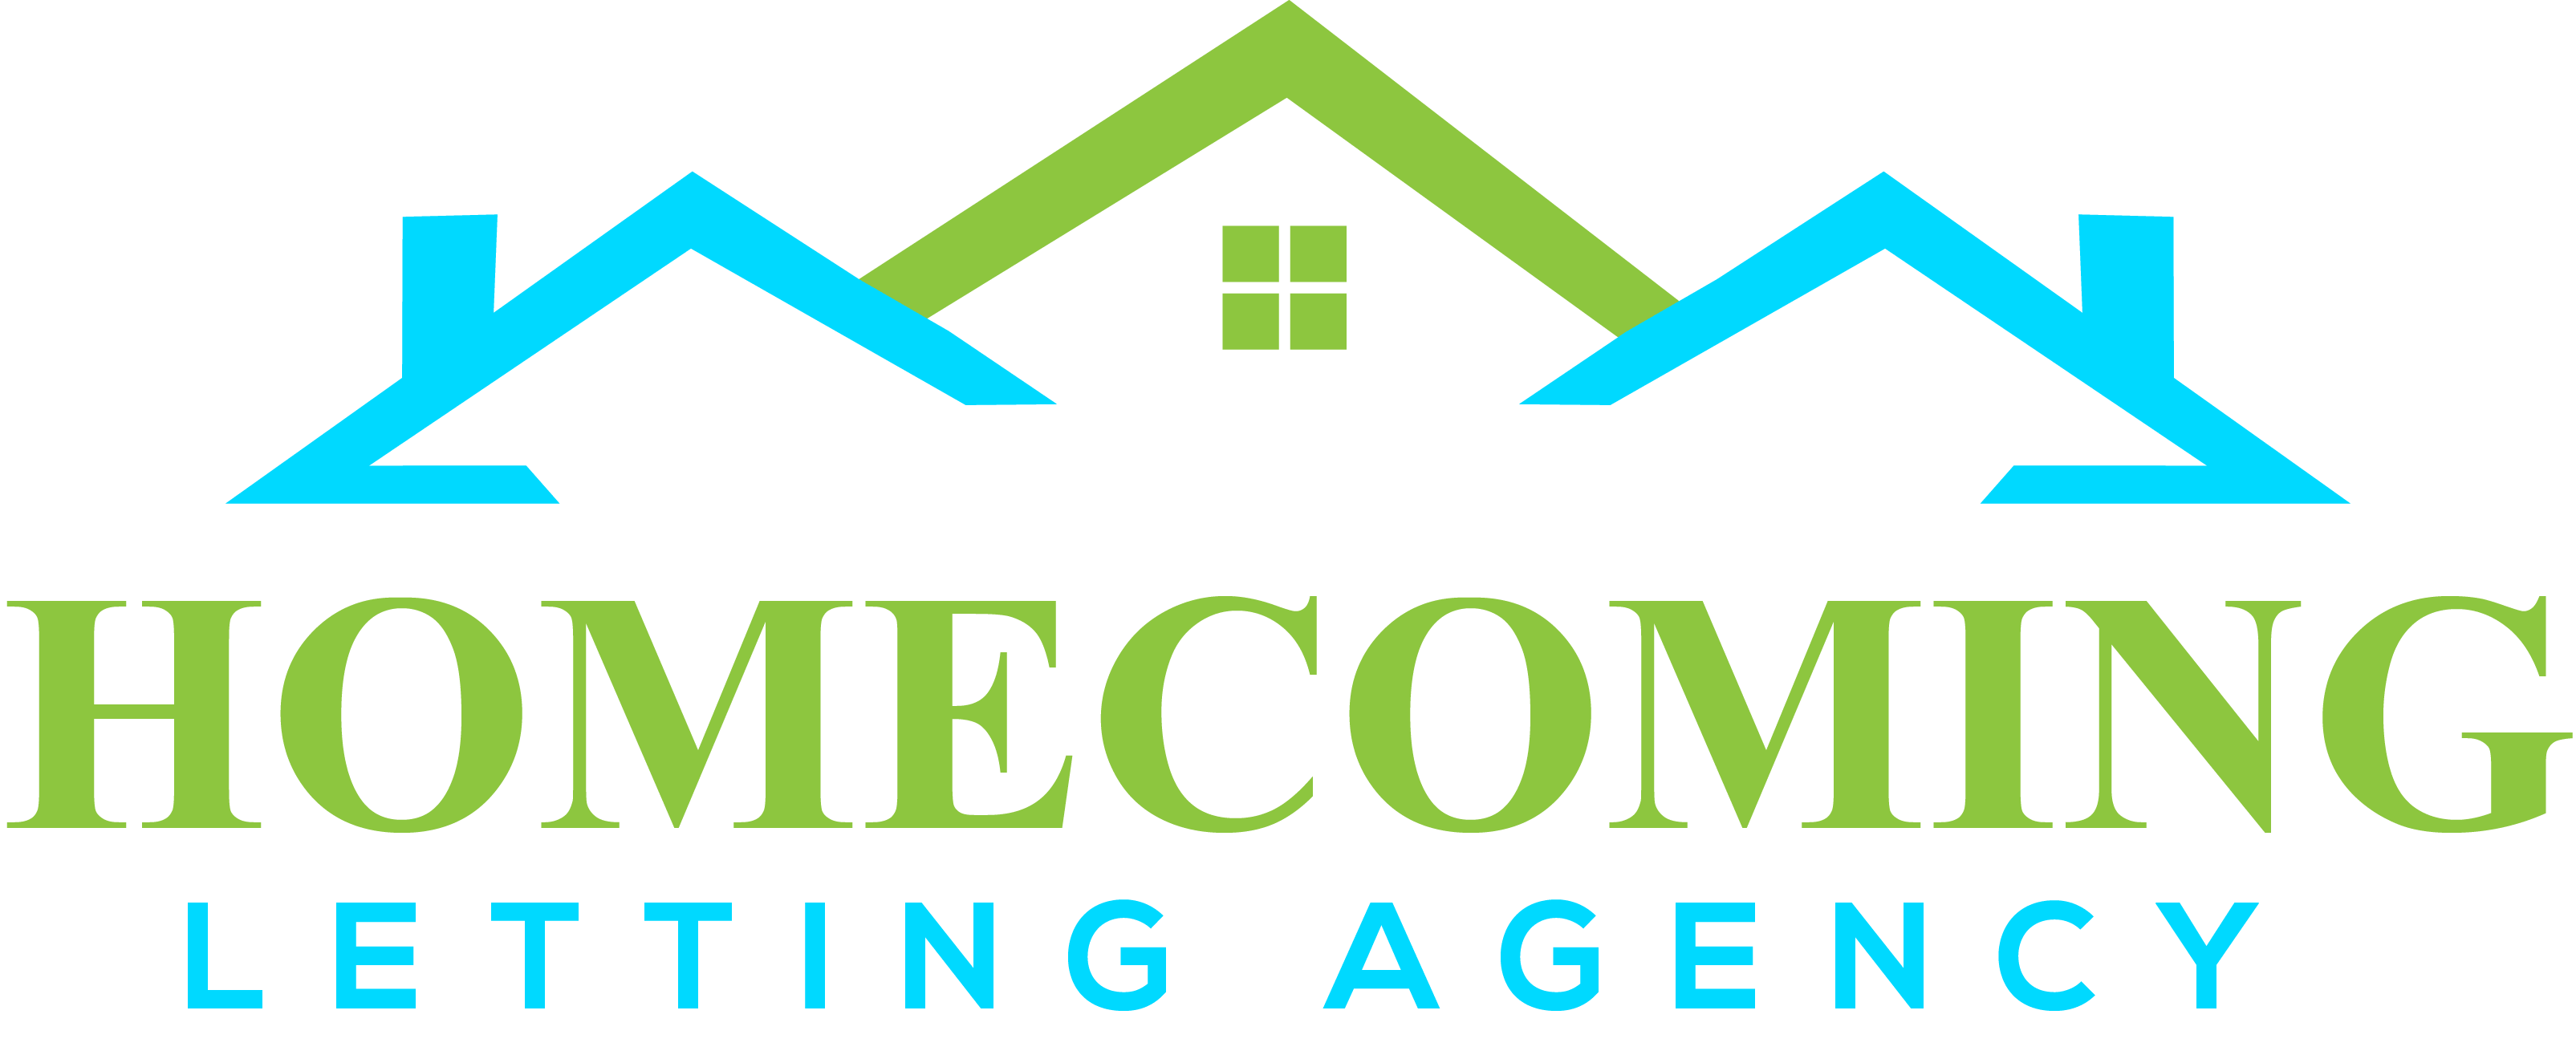 Homecoming Letting Agency